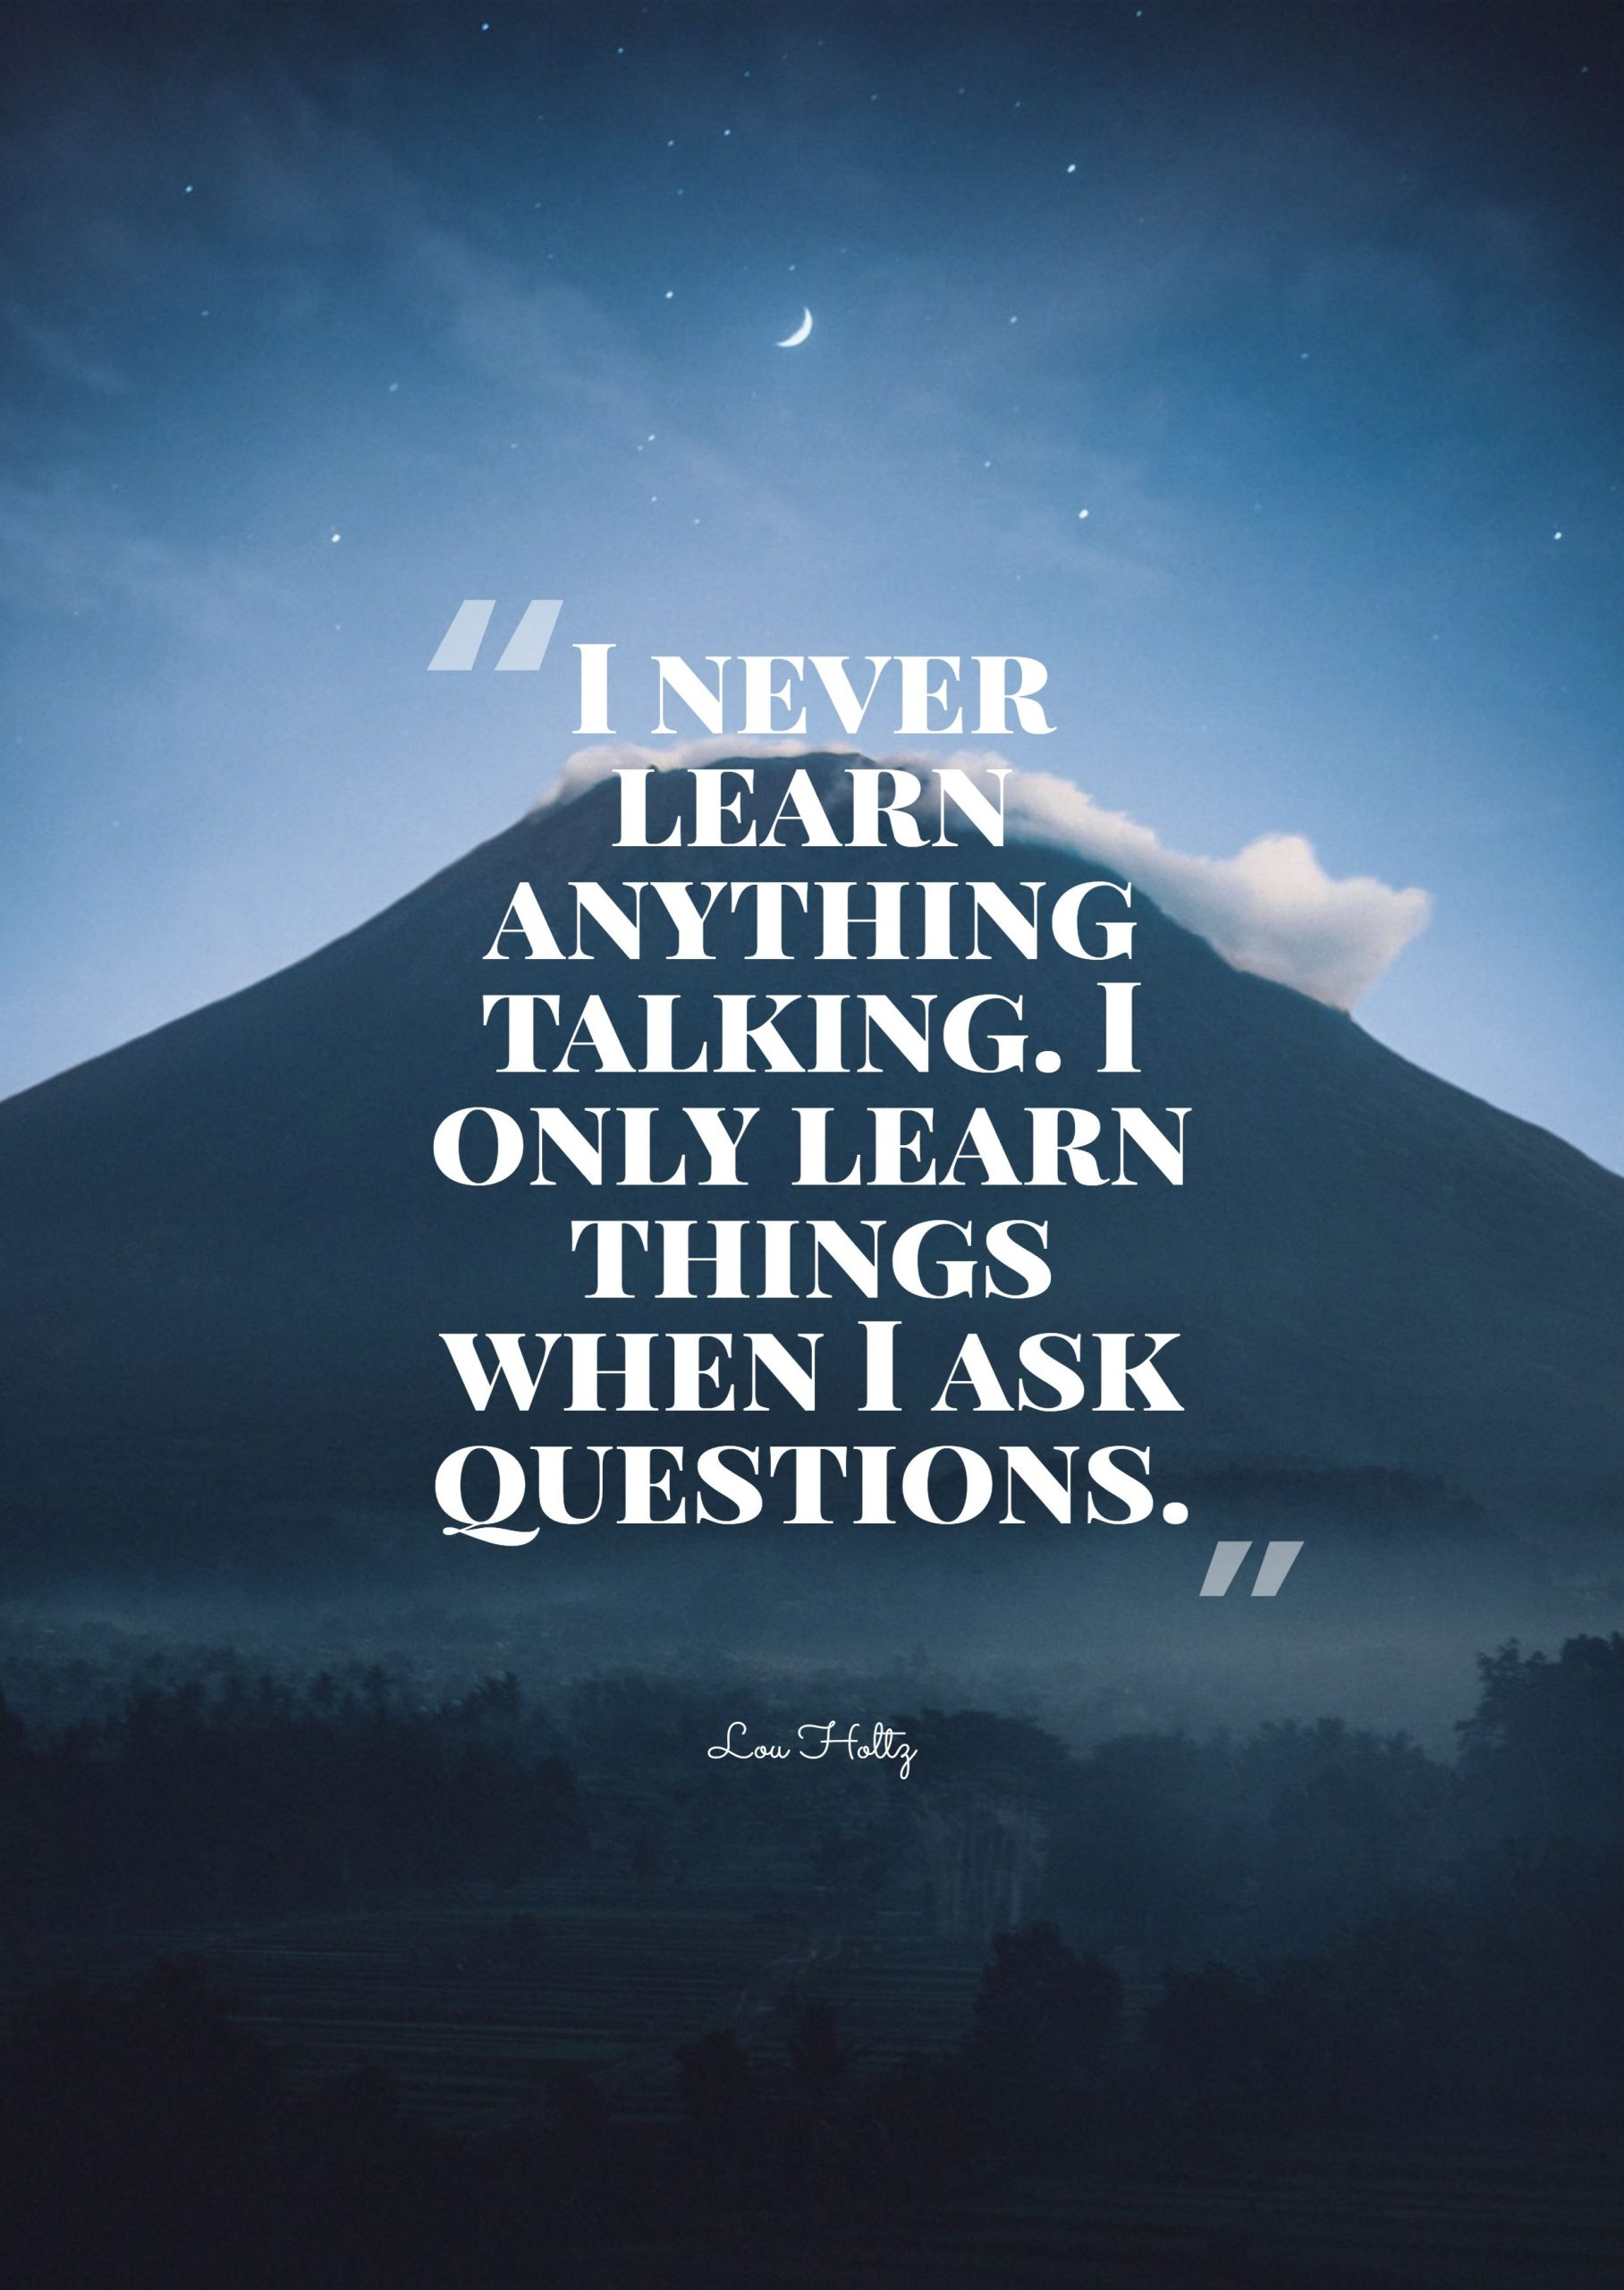 Quotes image of I never learn anything talking. I only learn things when I ask questions.